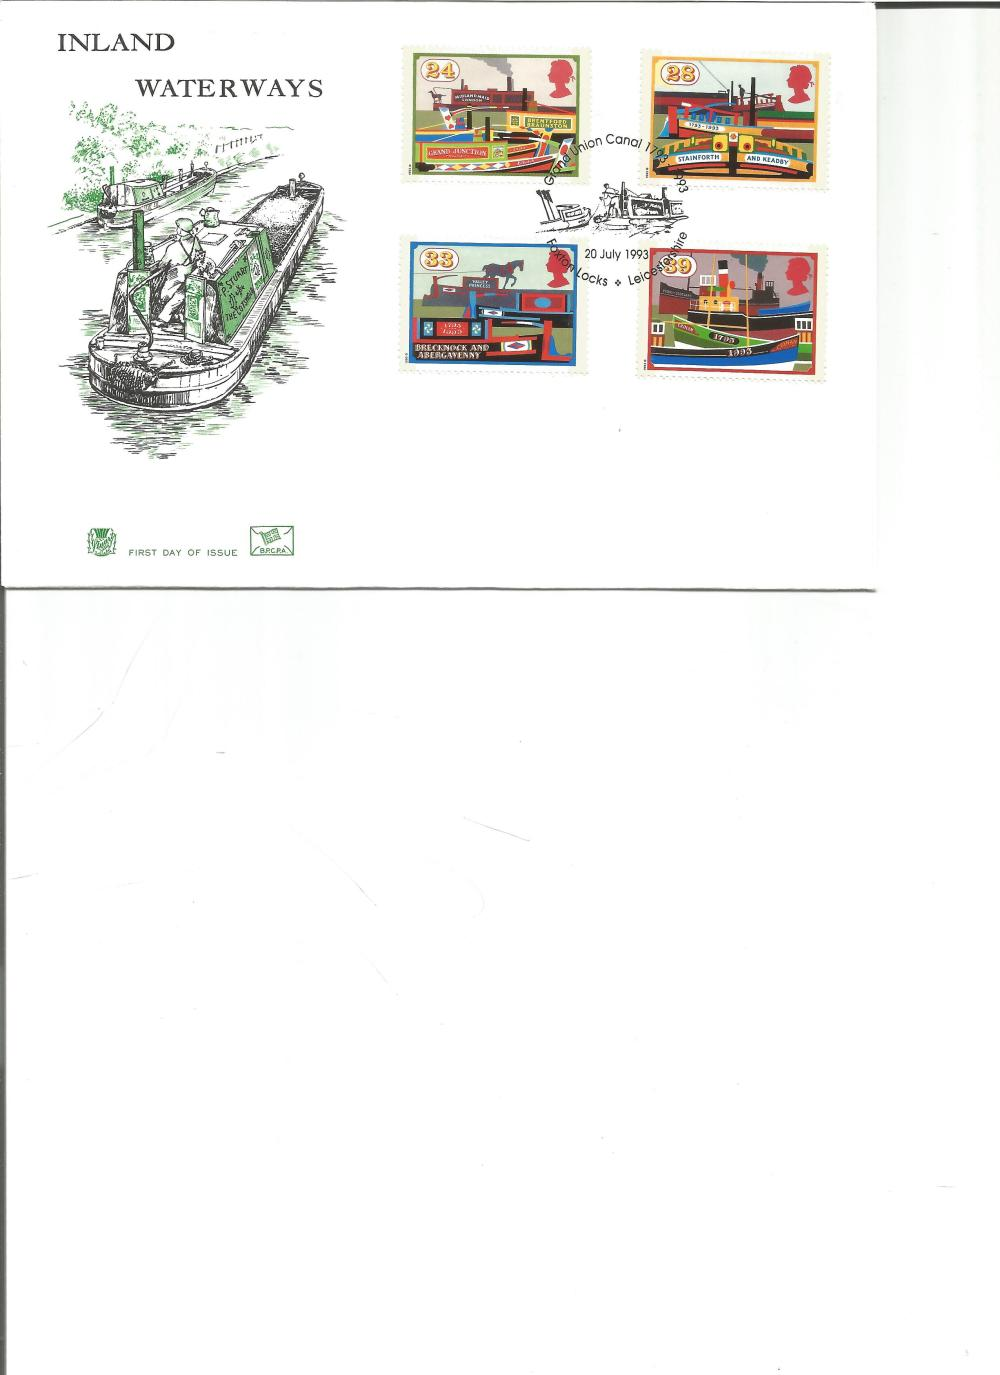 FDC Inland Waterways c/w set of four commemorative stamps PM Great Union Canal 1793-1993 Foxton